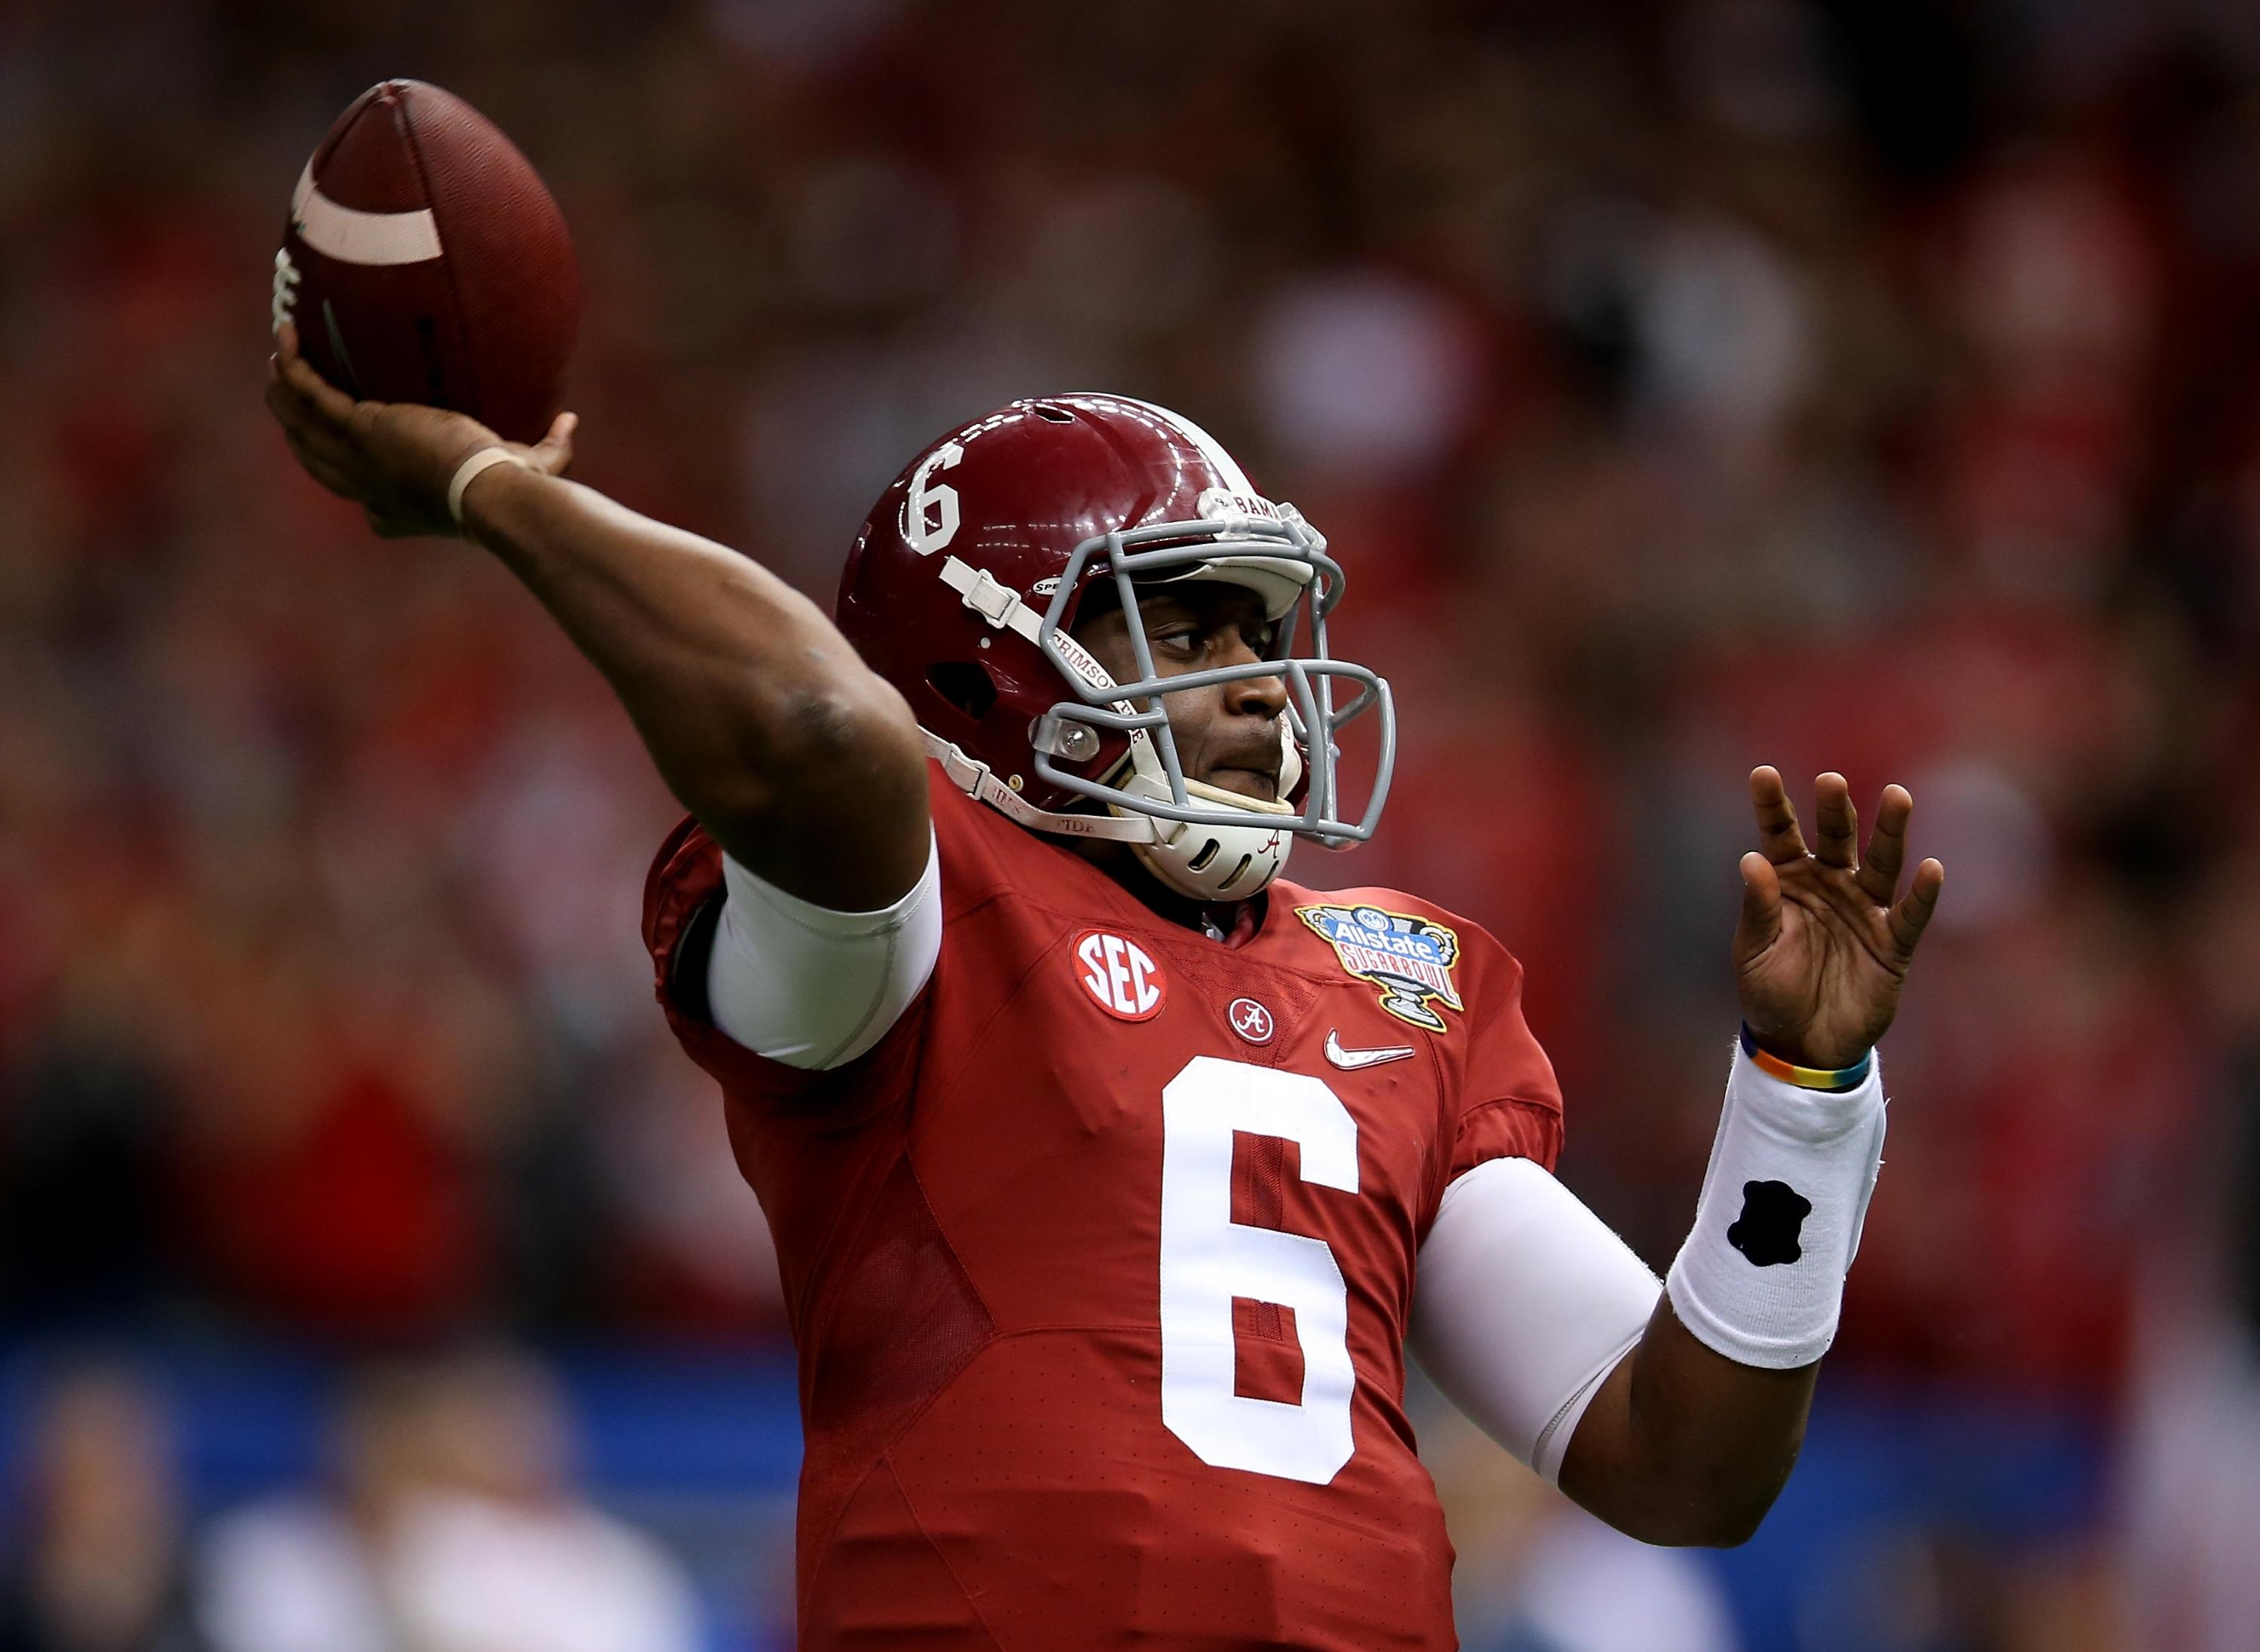 Blake Sims pens letter to Alabama, Nick Saban and Lane Kiffin